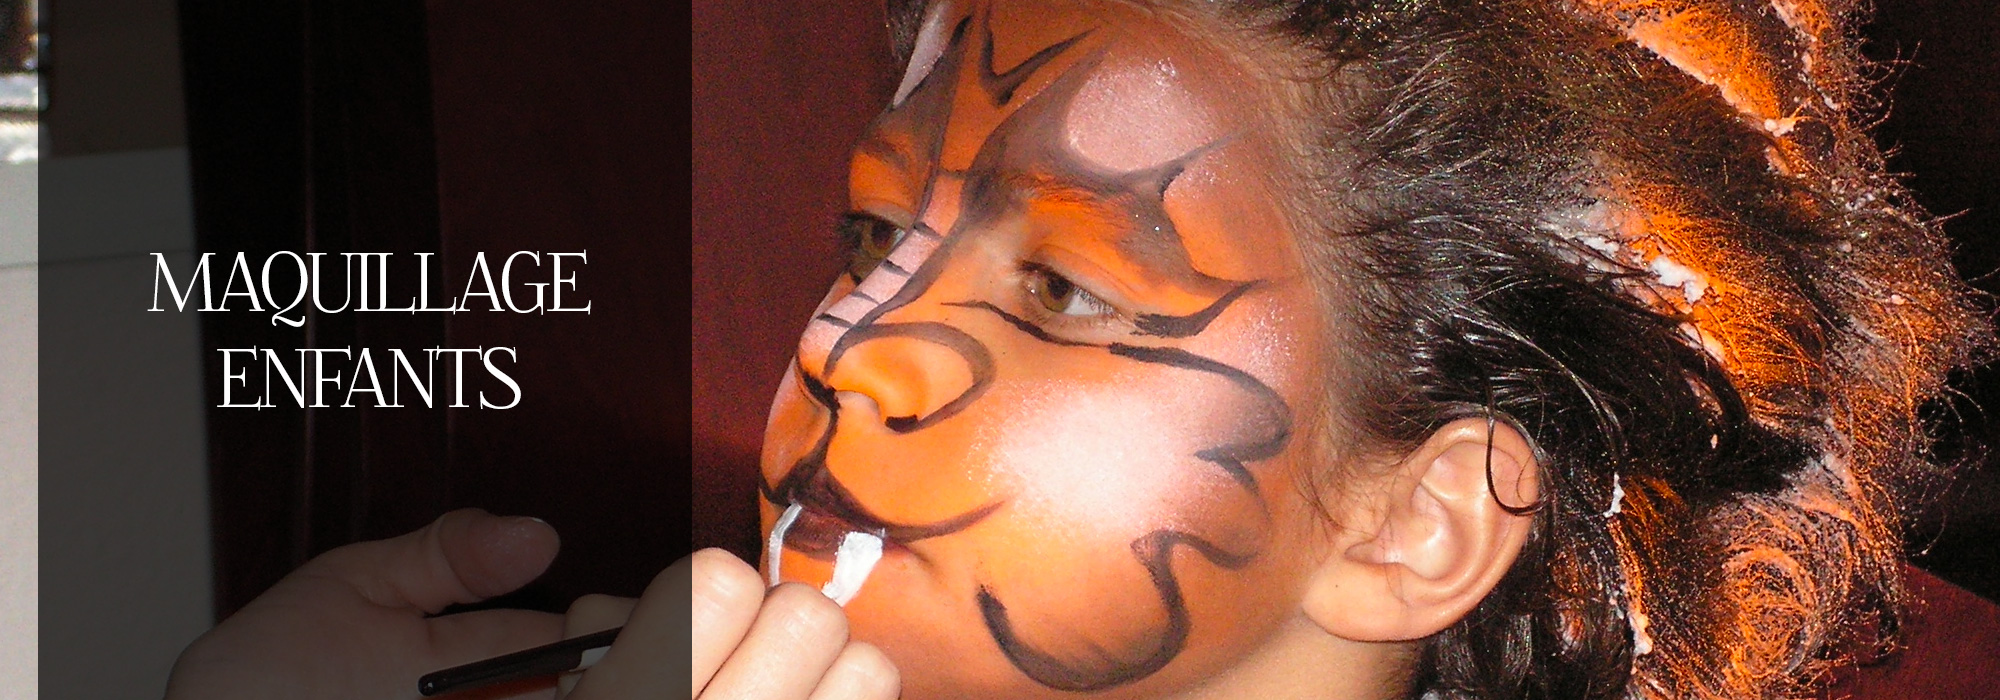 Maquillage d'enfants